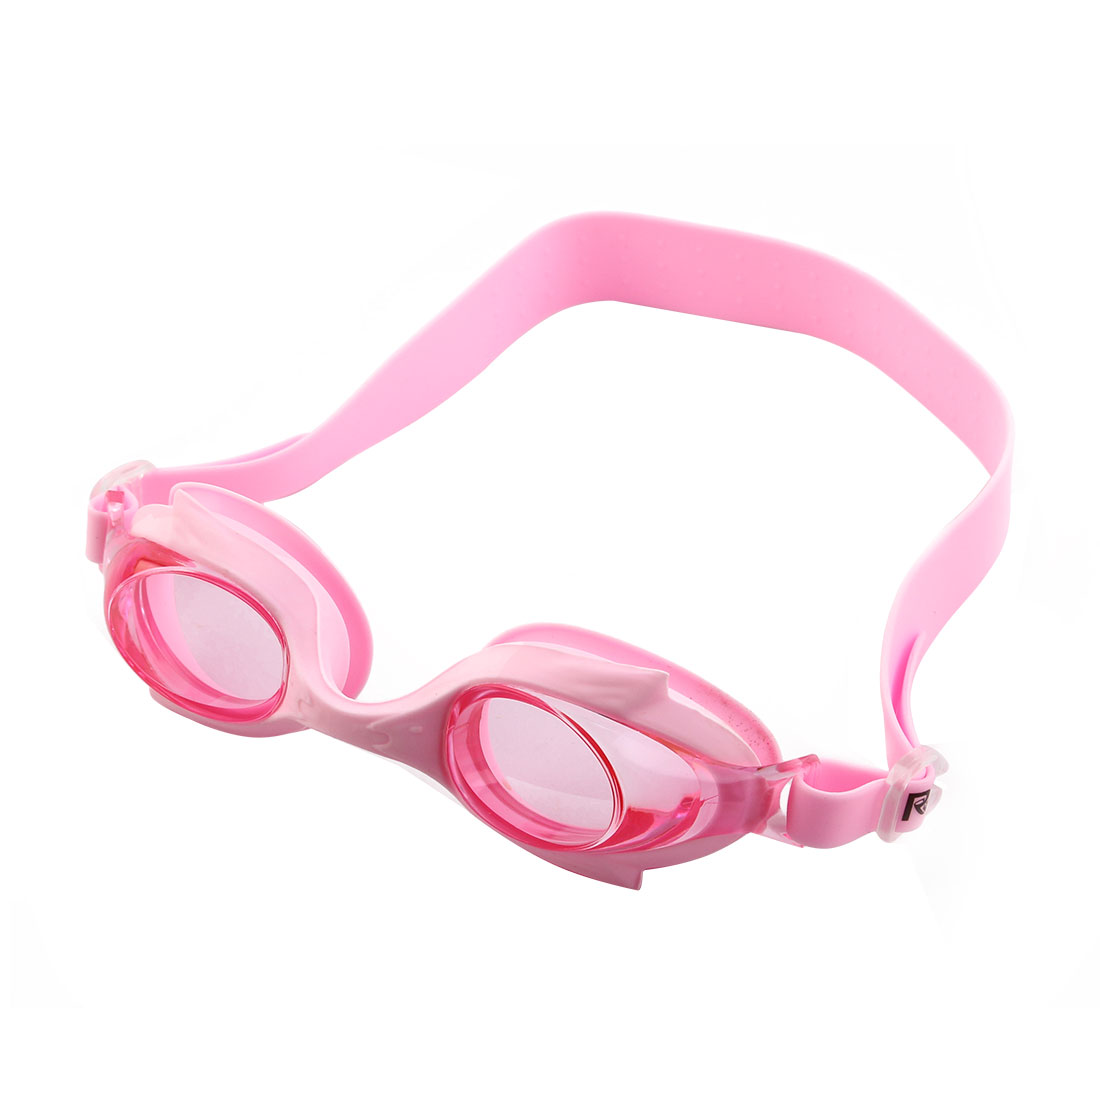 Silicone Adjustable Belt Clear Vision Anti Fog Swim Glasses Swimming Goggles Pink w Storage Case for Youth Boys Girls